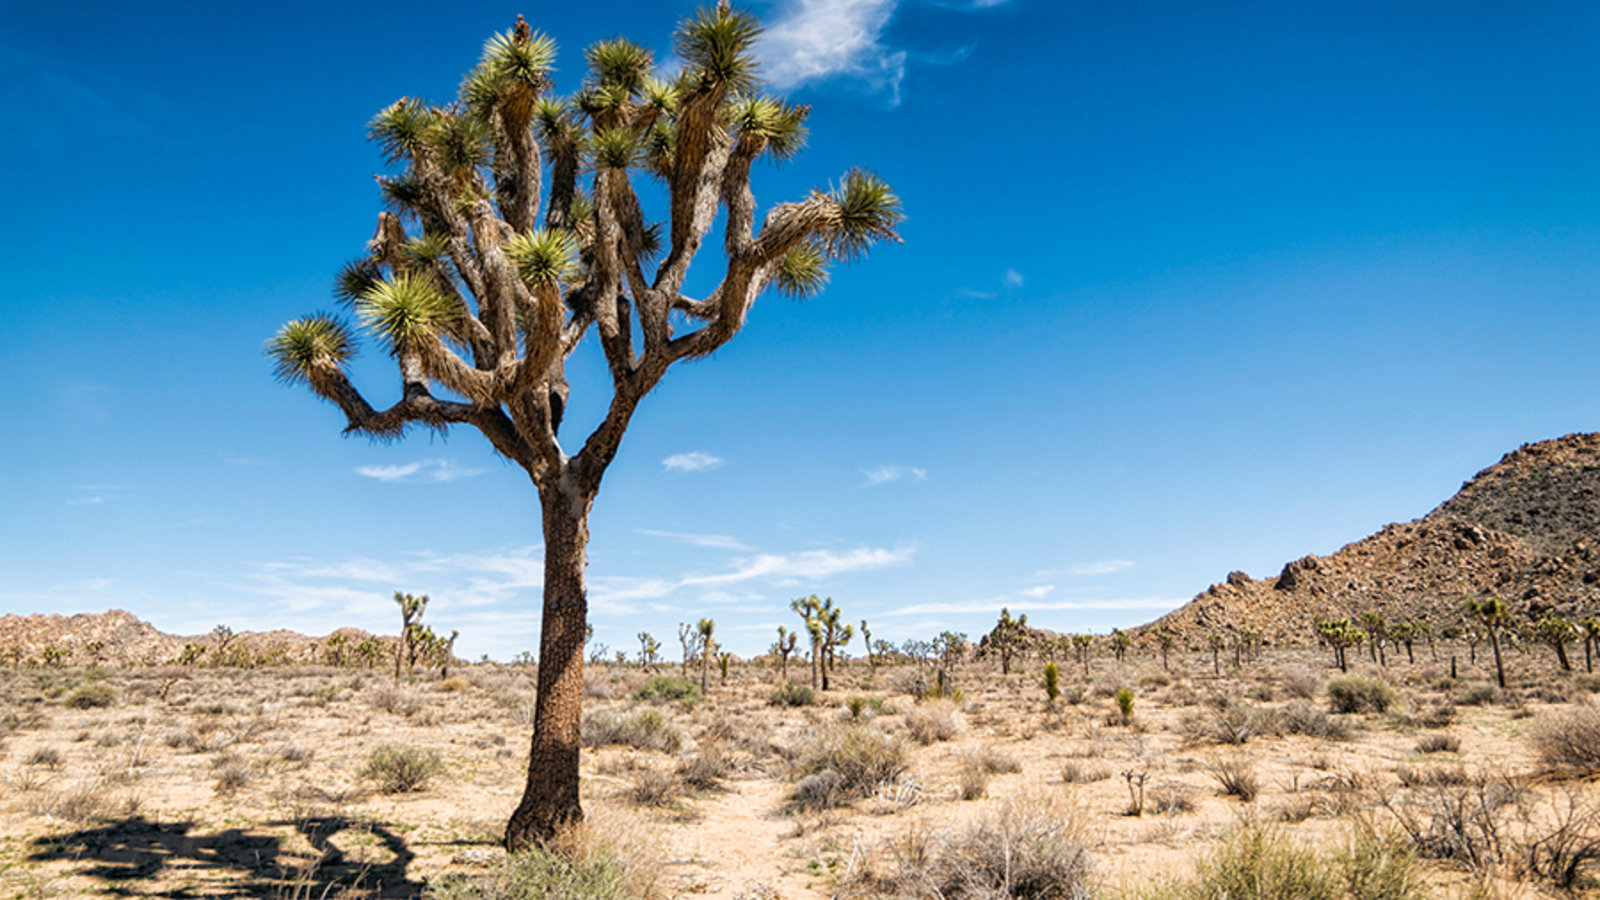 The Desert Bonanza of Plant Shapes